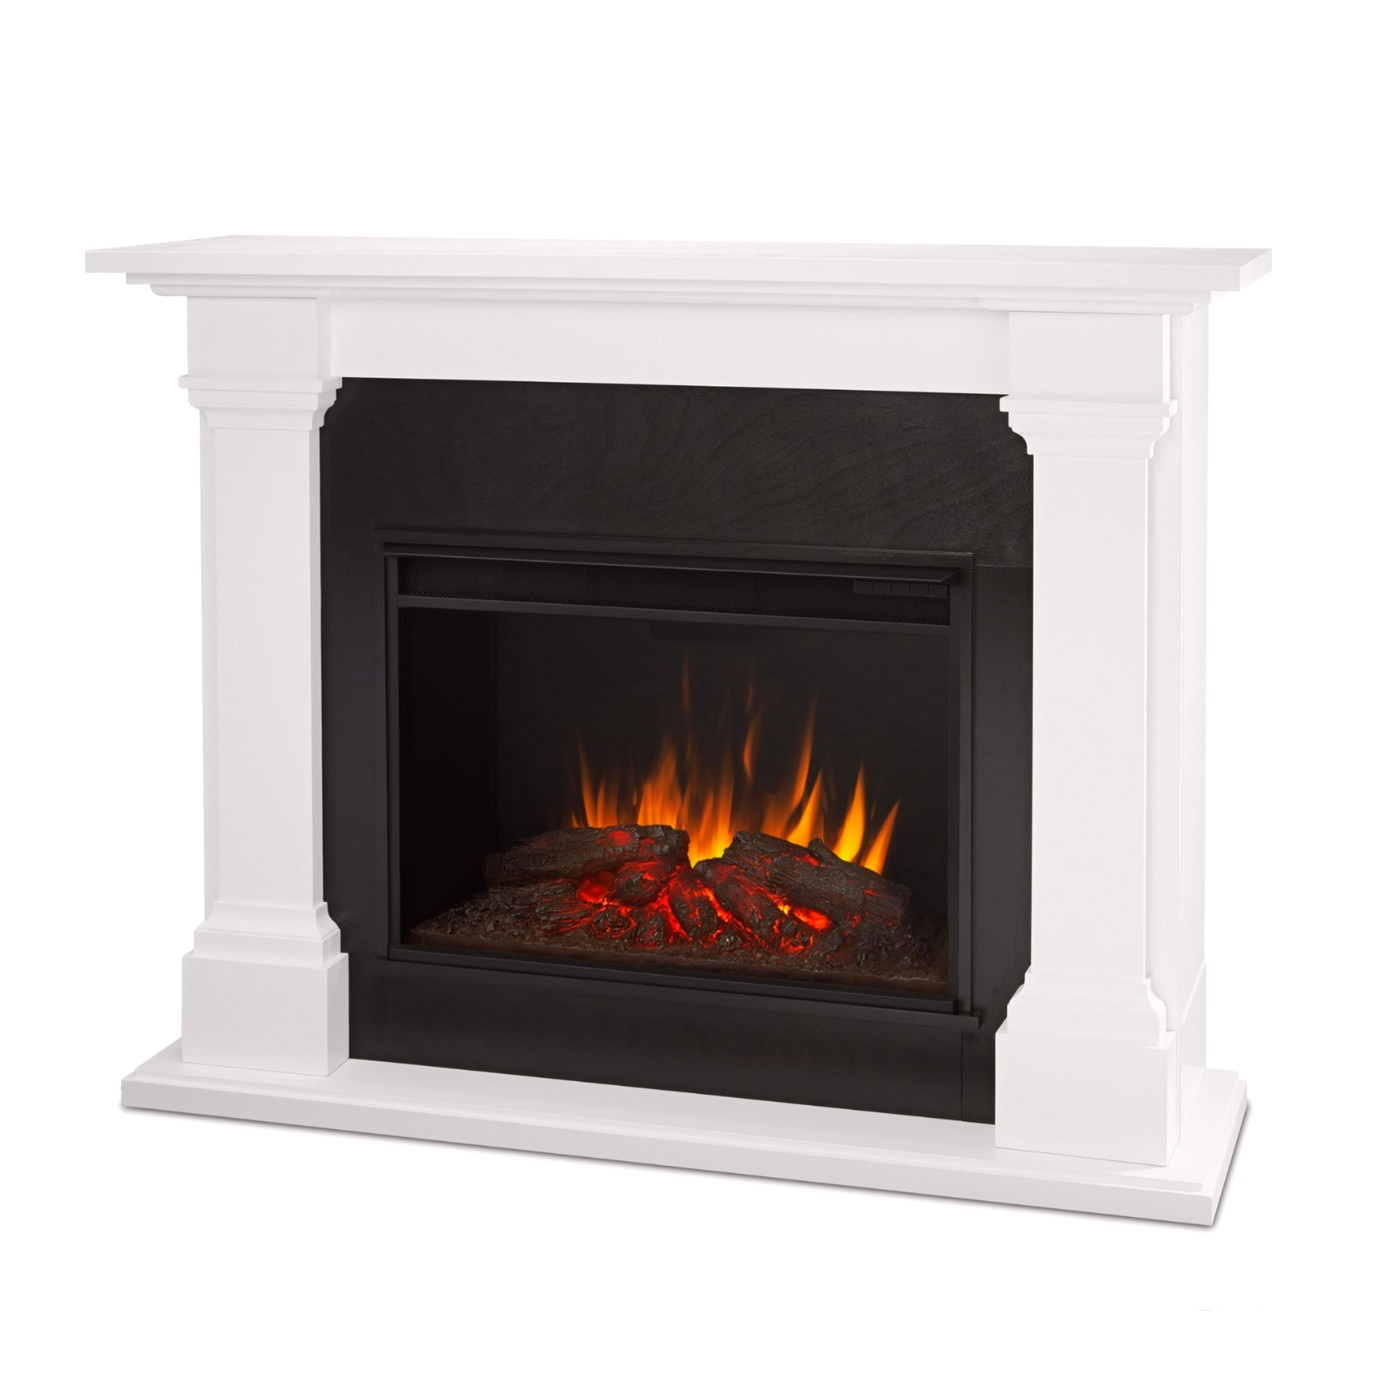 Callaway Grand Vivid Led Electric Fireplace In White